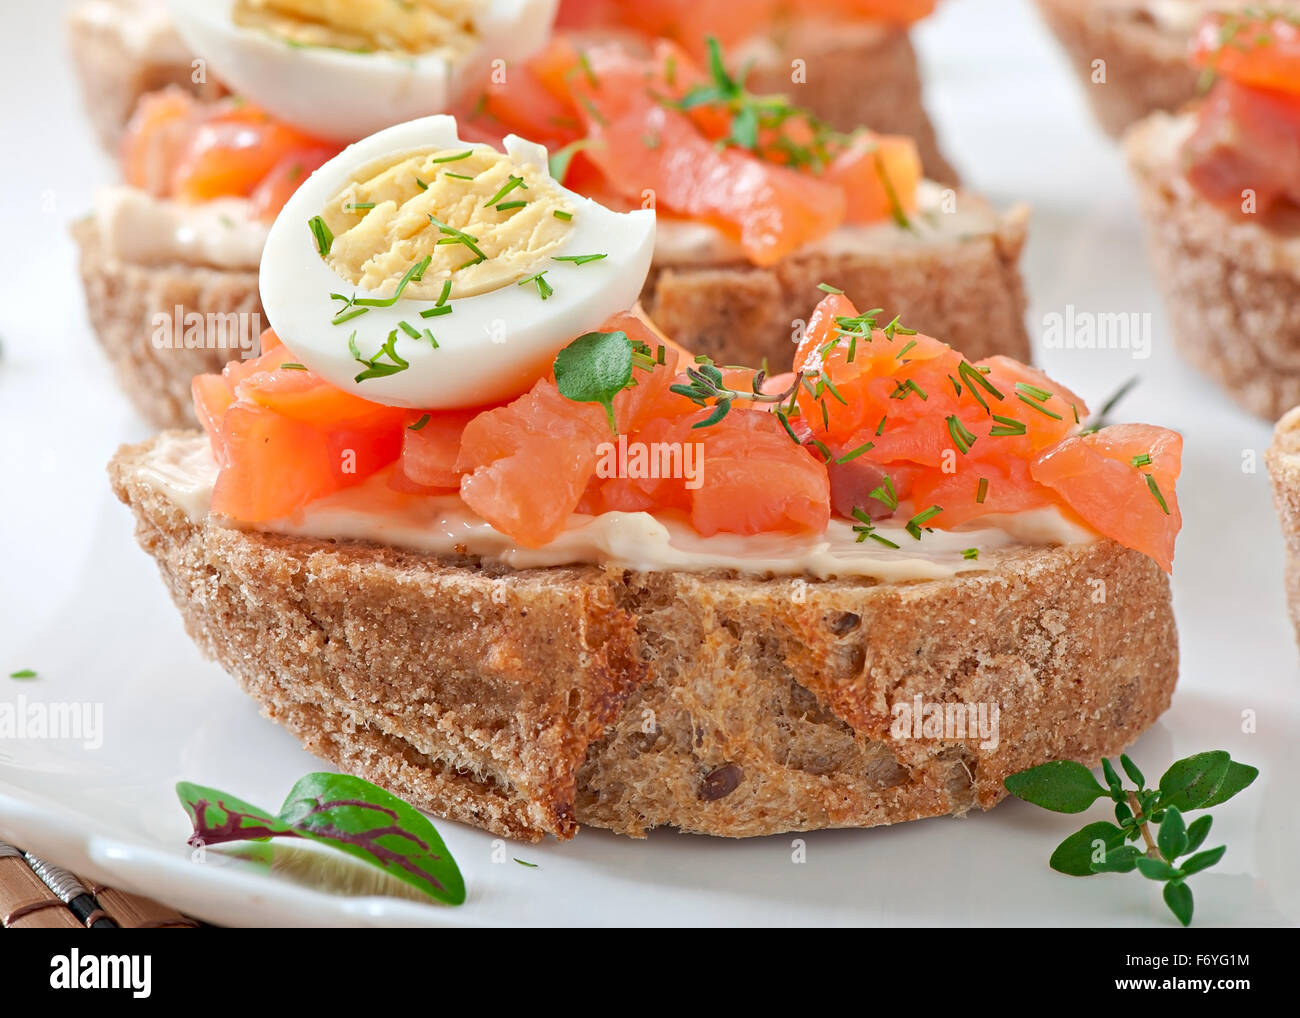 Sandwich with salted salmon and cream cheese. - Stock Image